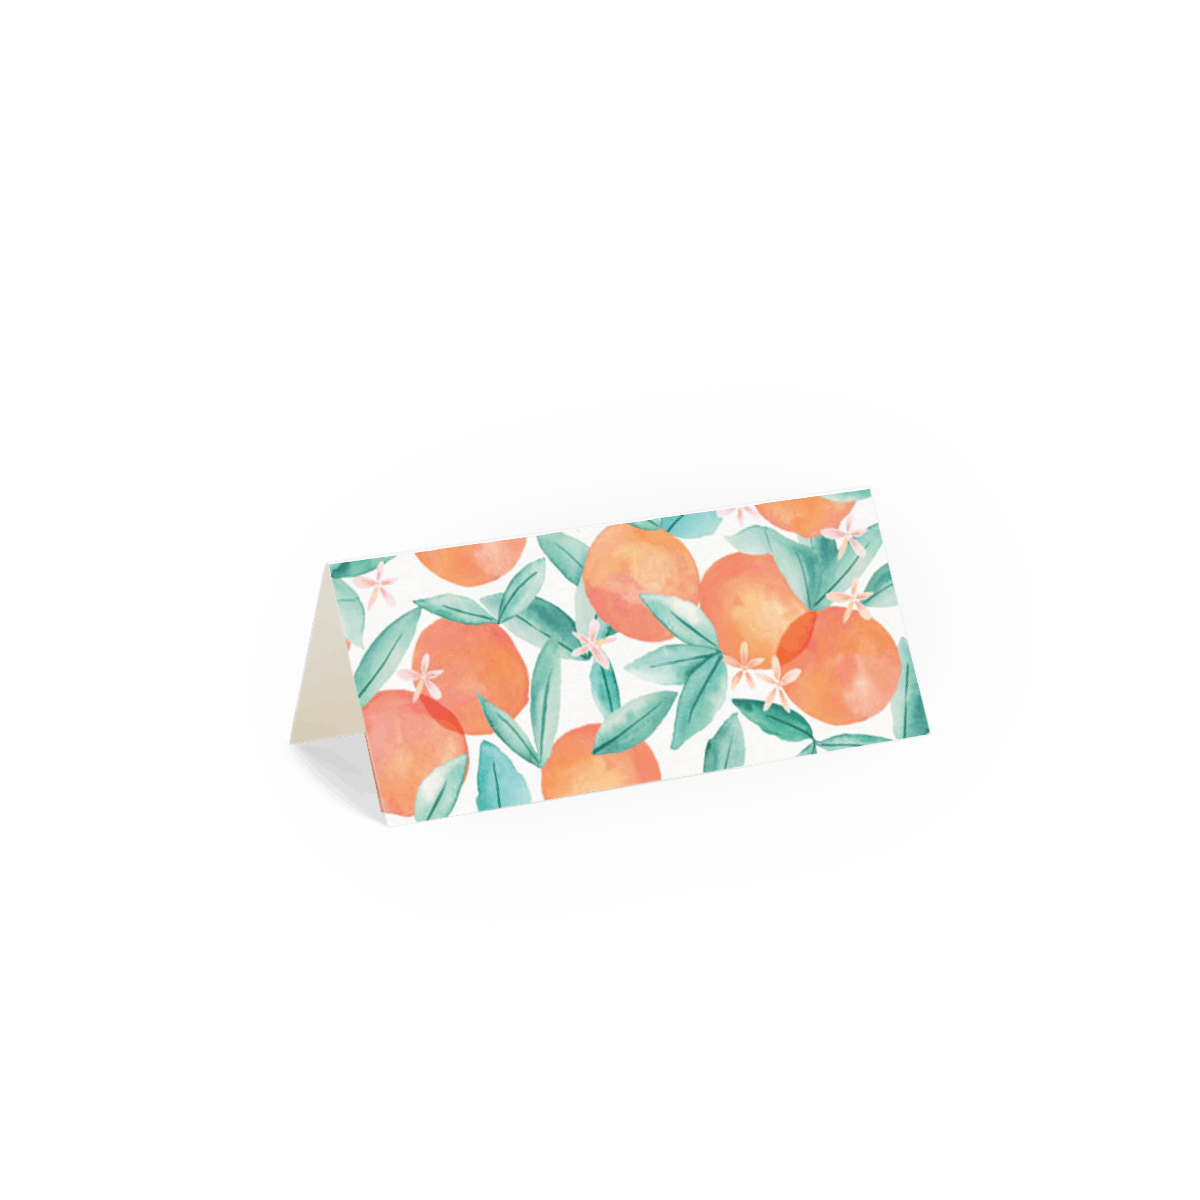 Https%3a%2f%2fwww.papier.com%2fproduct image%2f81045%2f15%2fseville citrus 19361 ruckseite 1561553400.png?ixlib=rb 1.1